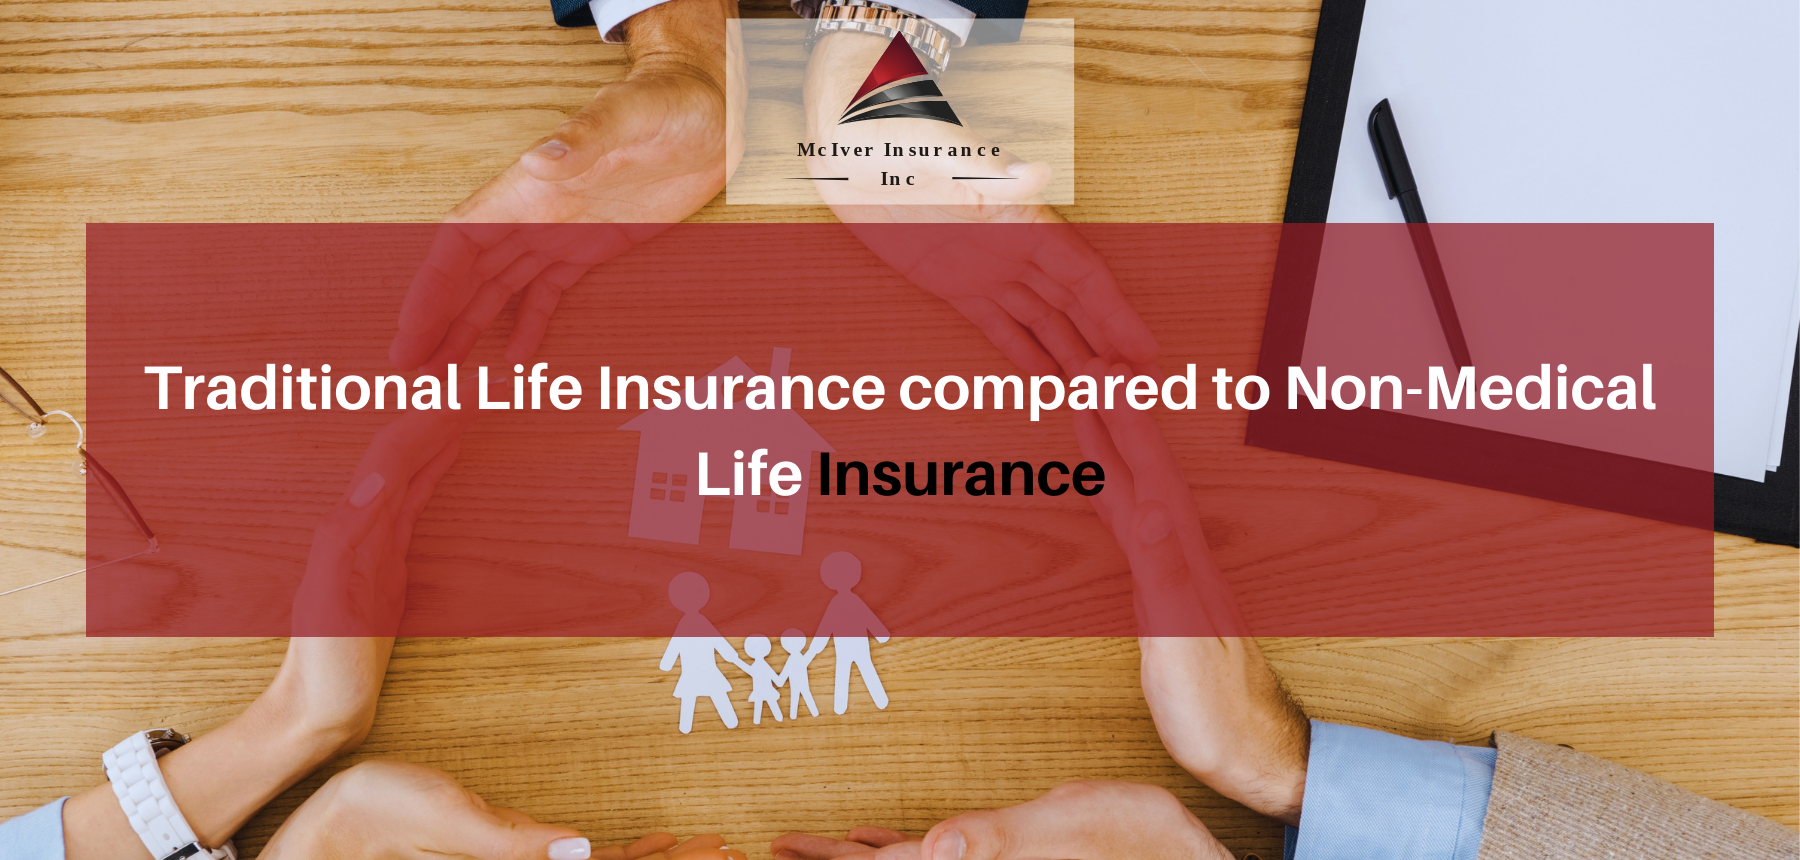 Traditional Life Insurance compared to Non-Medical Life Insurance